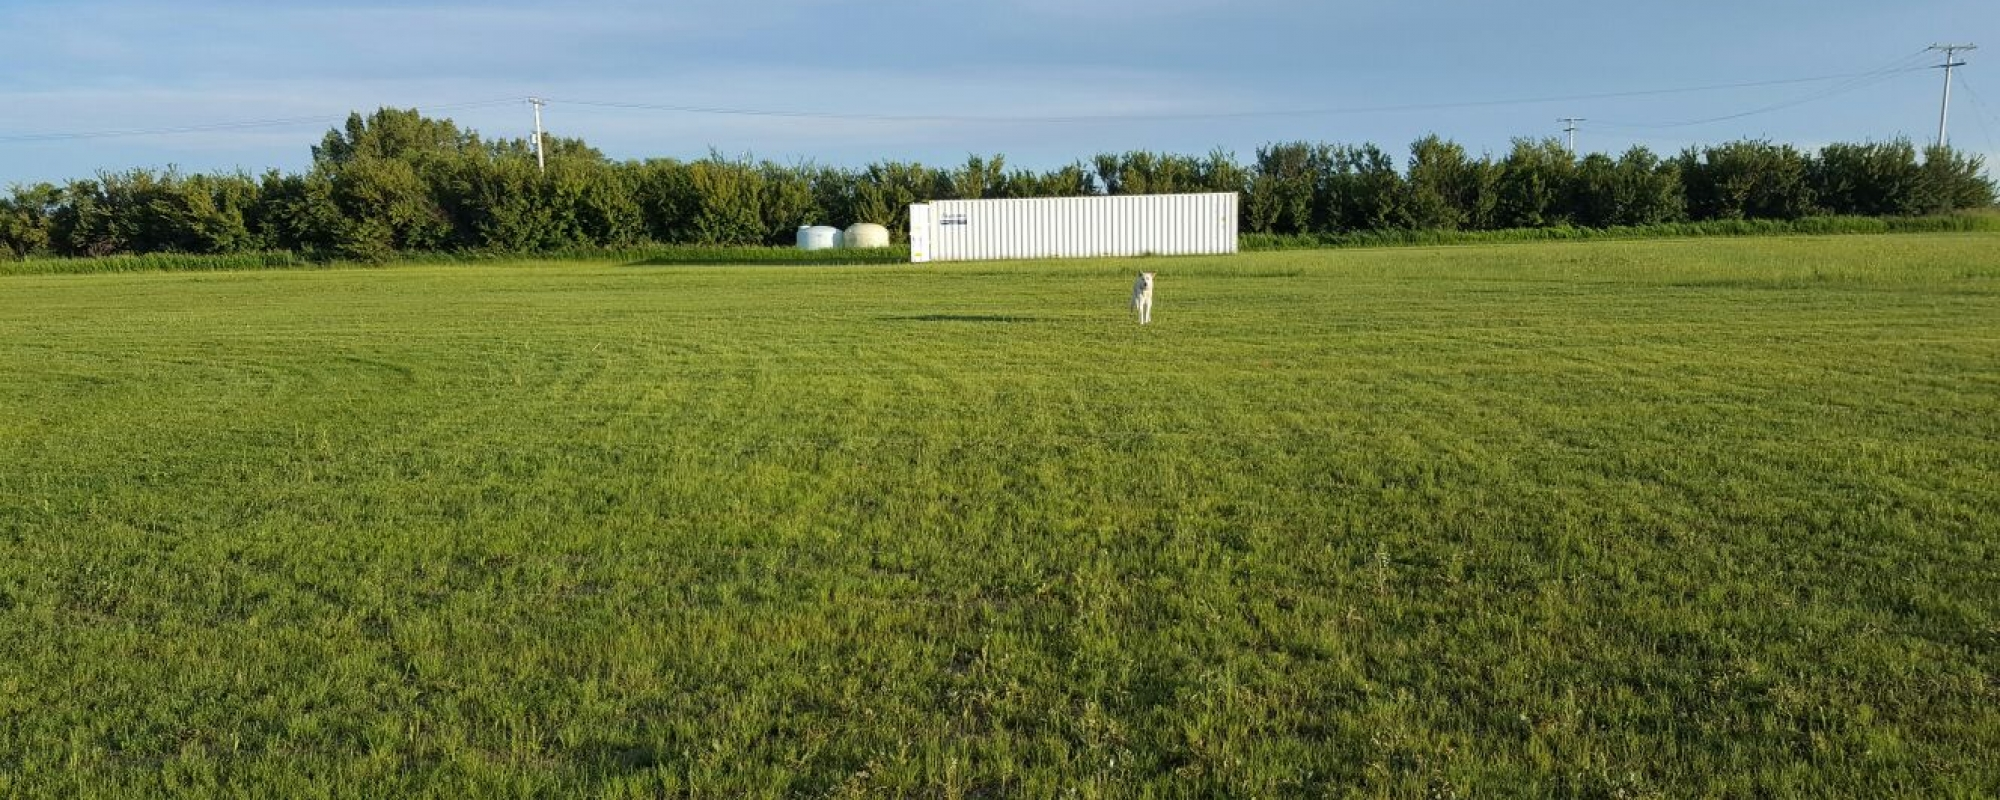 We're building our own cricket field...